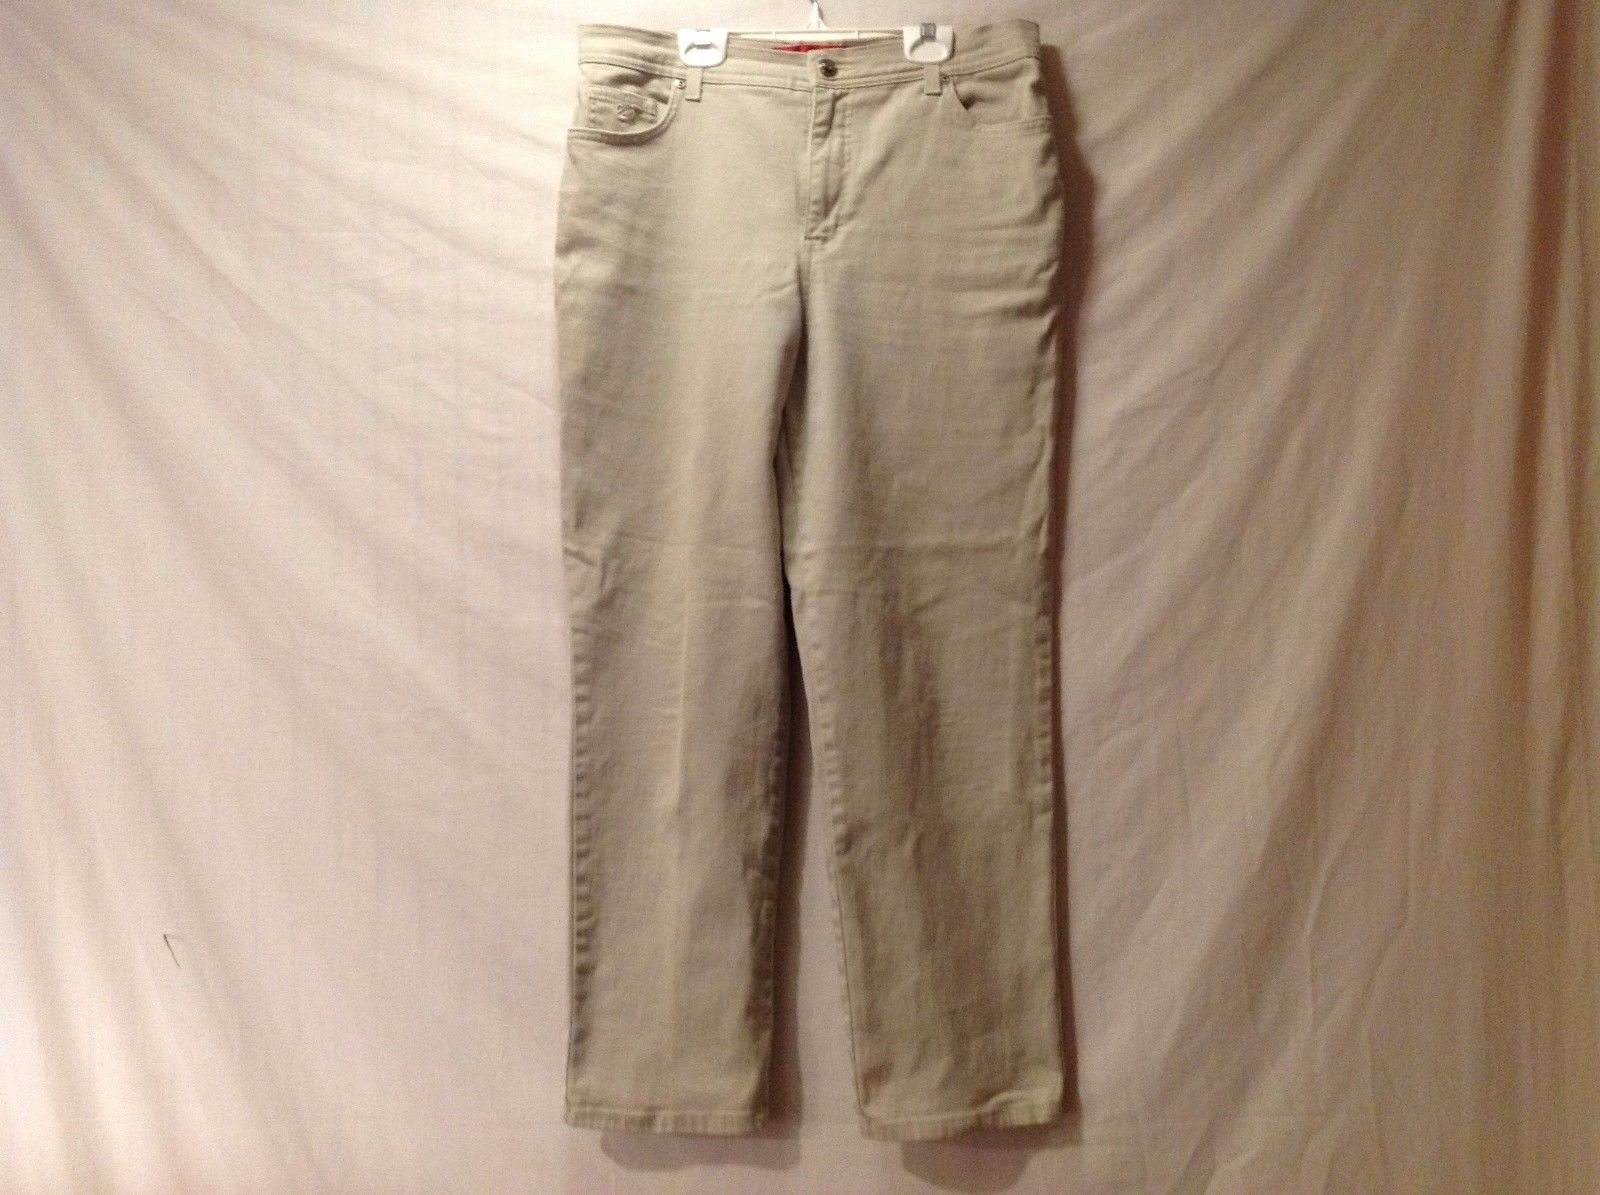 Great Condition Gloria Vanderbilt Size 12 Petite Cotton Blend Khaki Pants